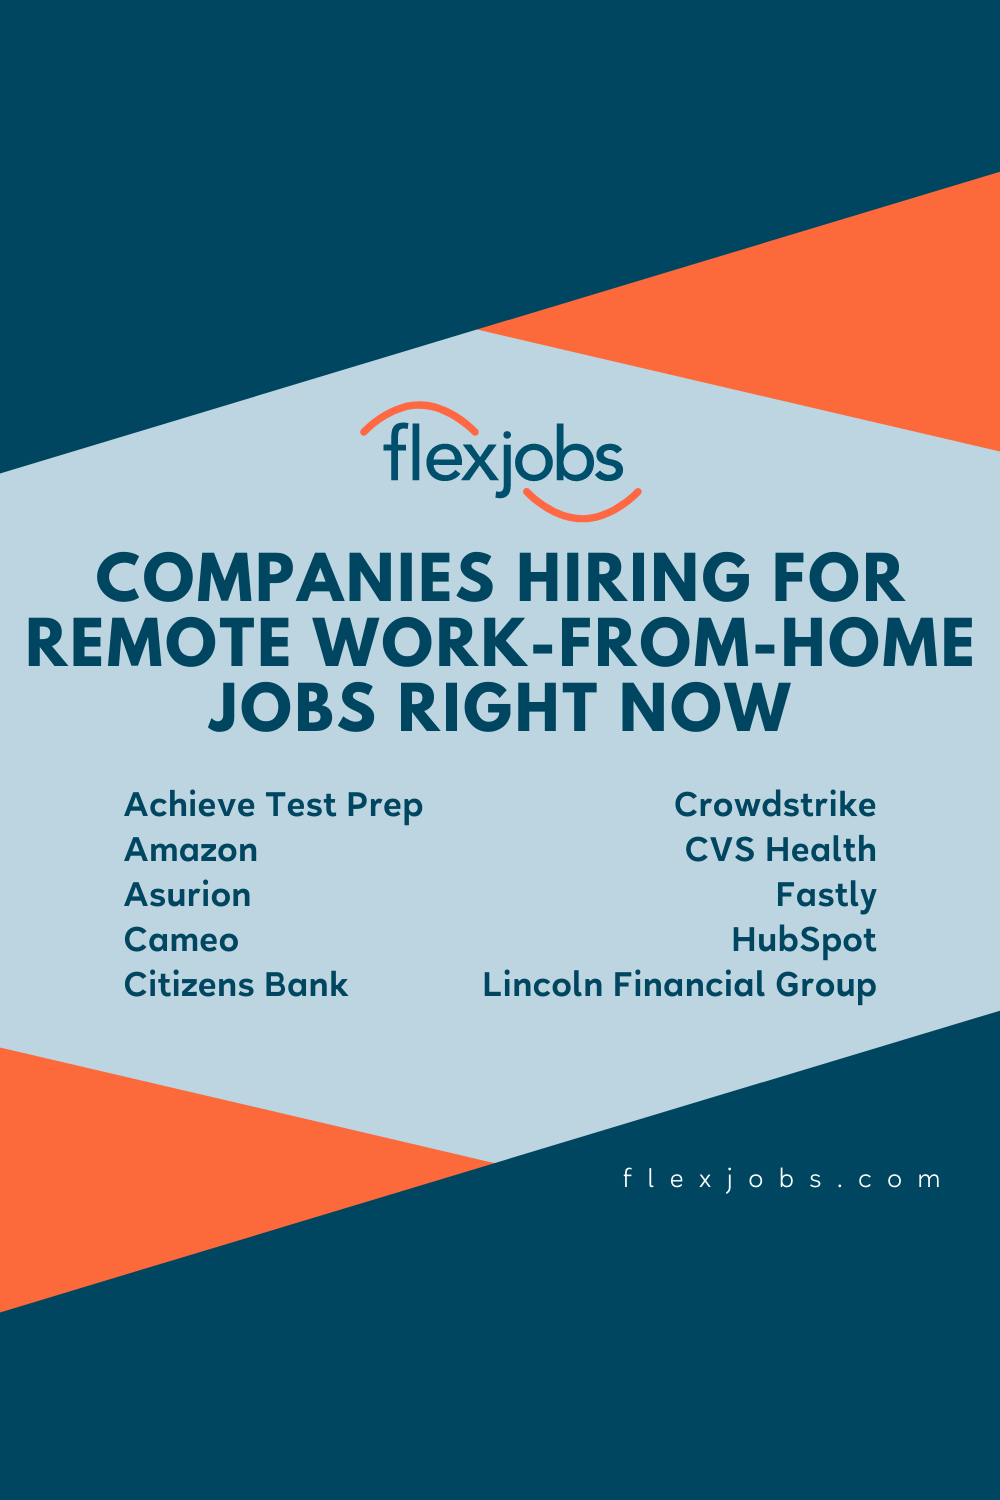 Pin On Current Job Openings In The Flexjobs Database